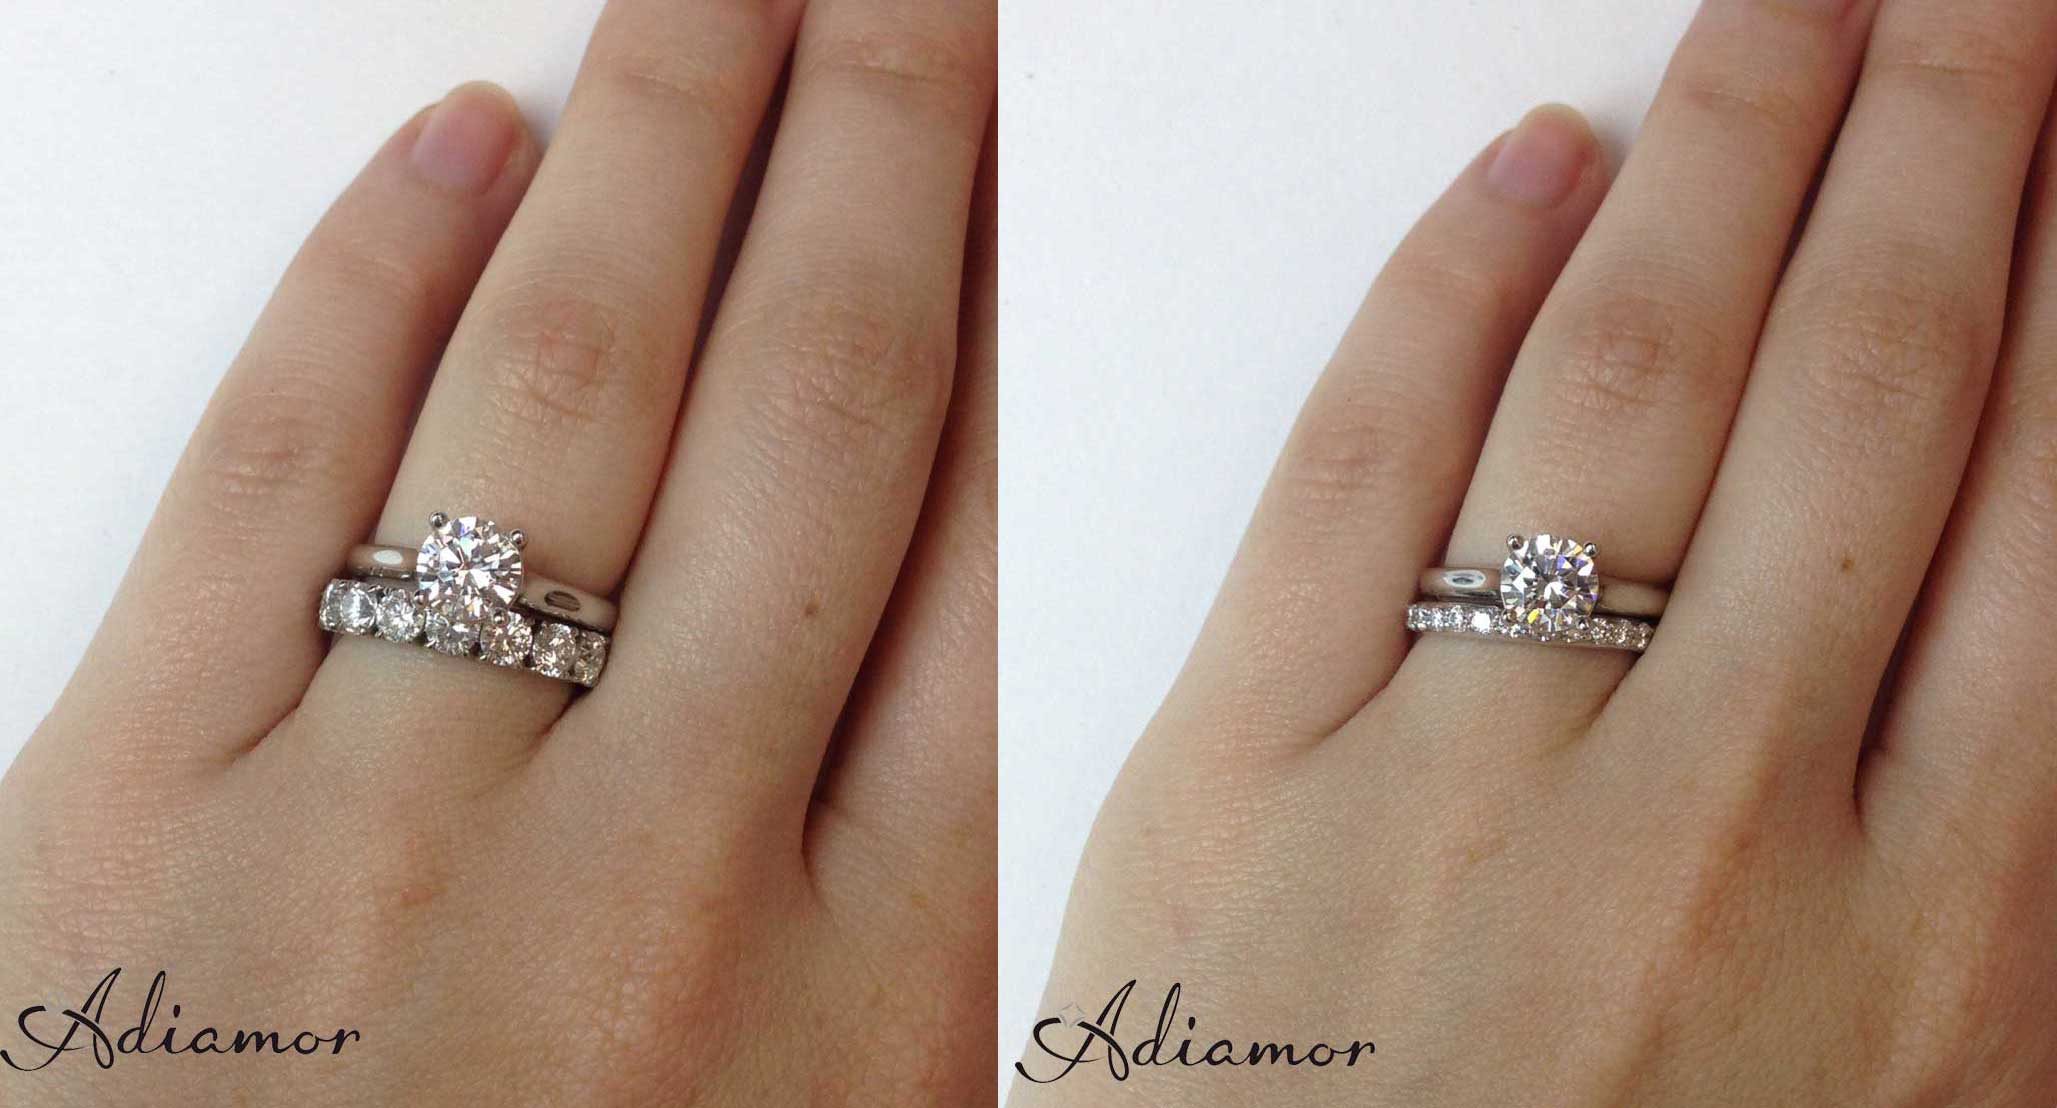 wedding ring wedding ring with band Solitaire Diamond Ring with 1 cttw and 3 cttw Eternity Bands